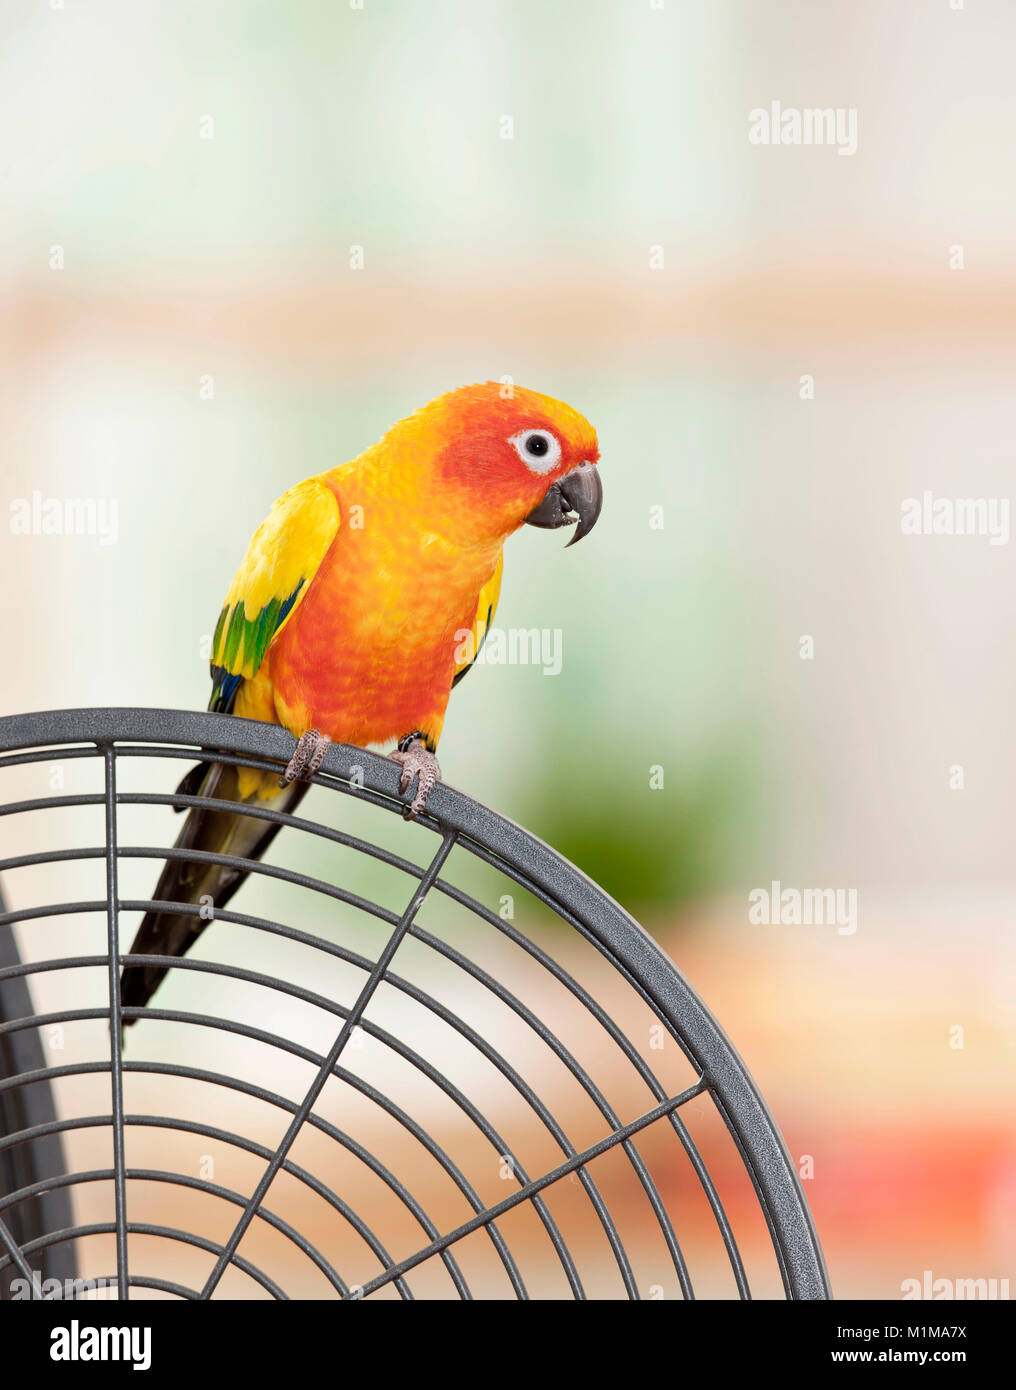 Sun Conure (Aratinga solstitialis). Adult perched on its cage. Germany - Stock Image